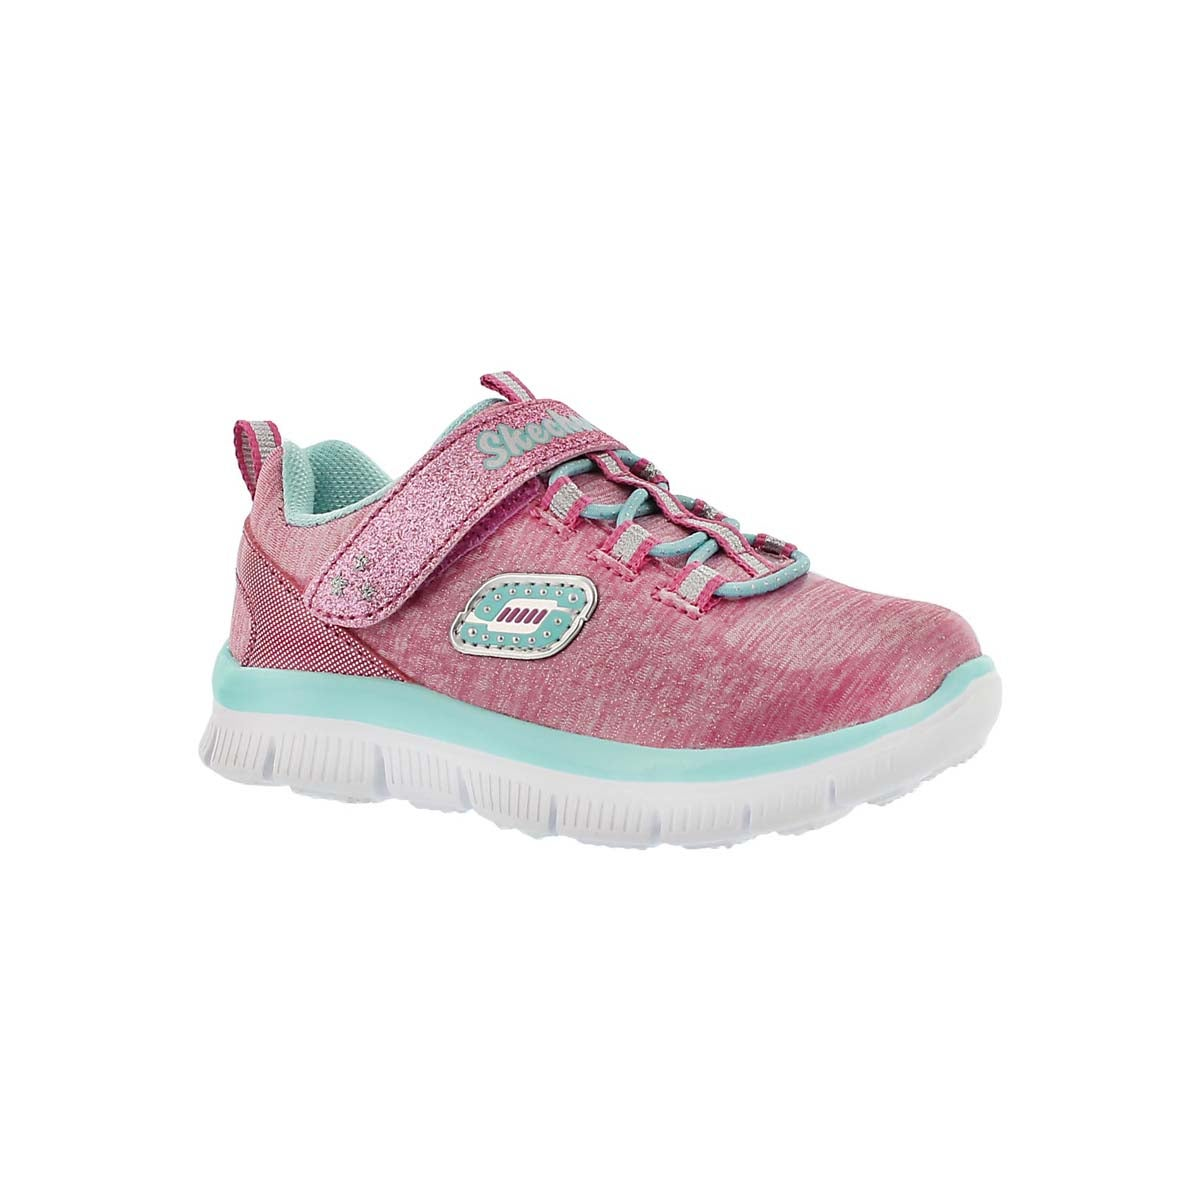 Infants' SPARKTACULAR pink/aqua running shoes